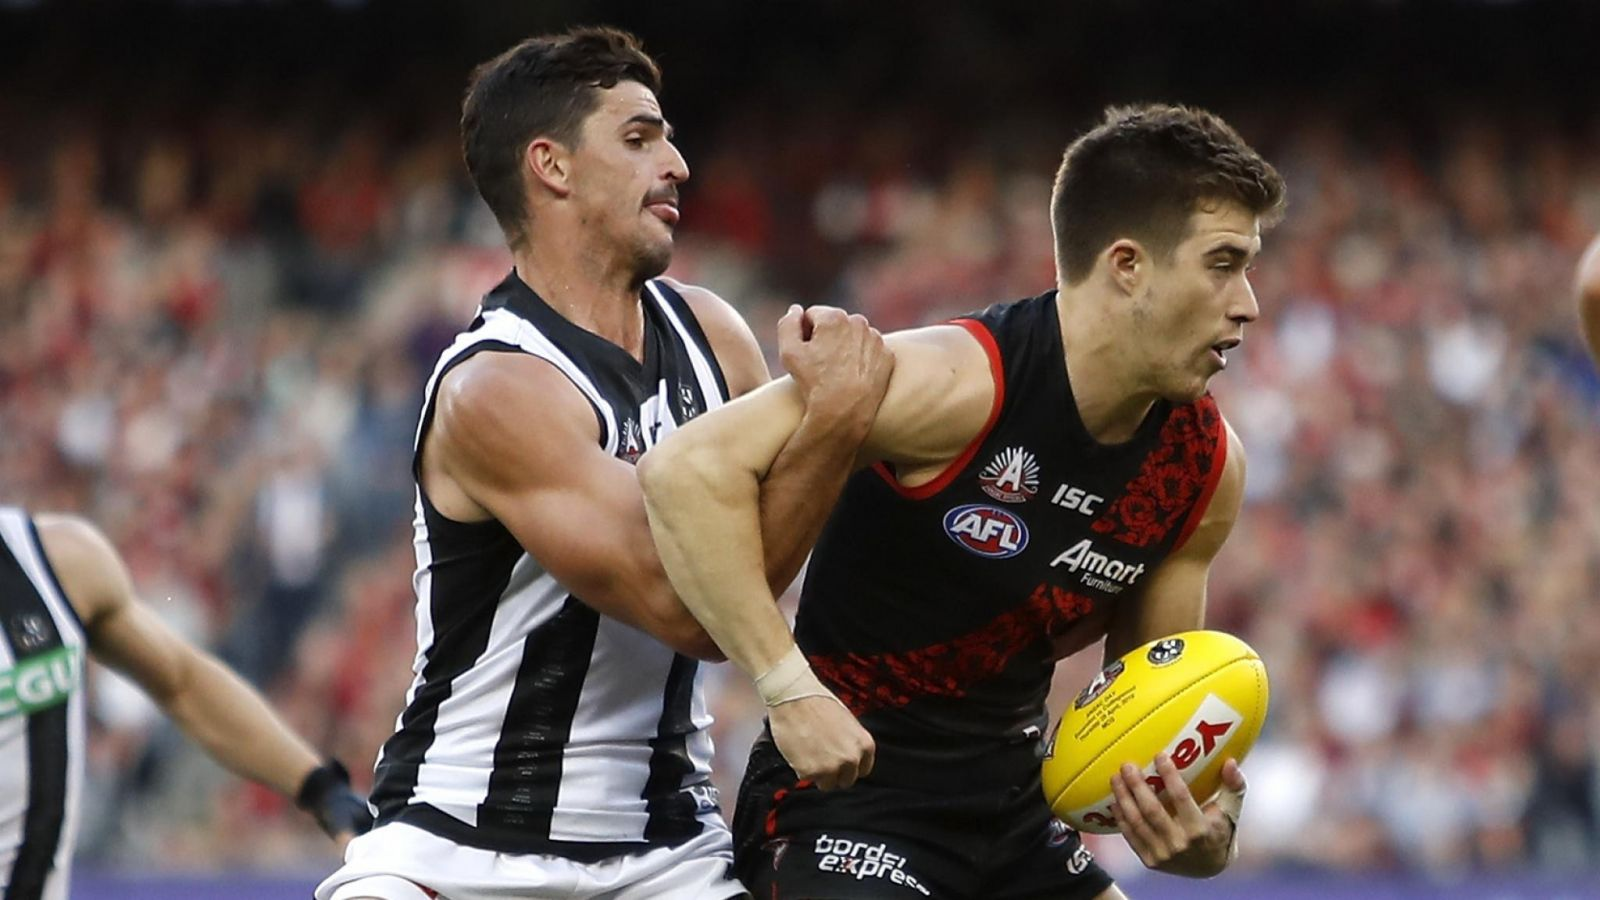 AFL 2019 Fantasy Tips: Round 23 Collingwood vs Essendon